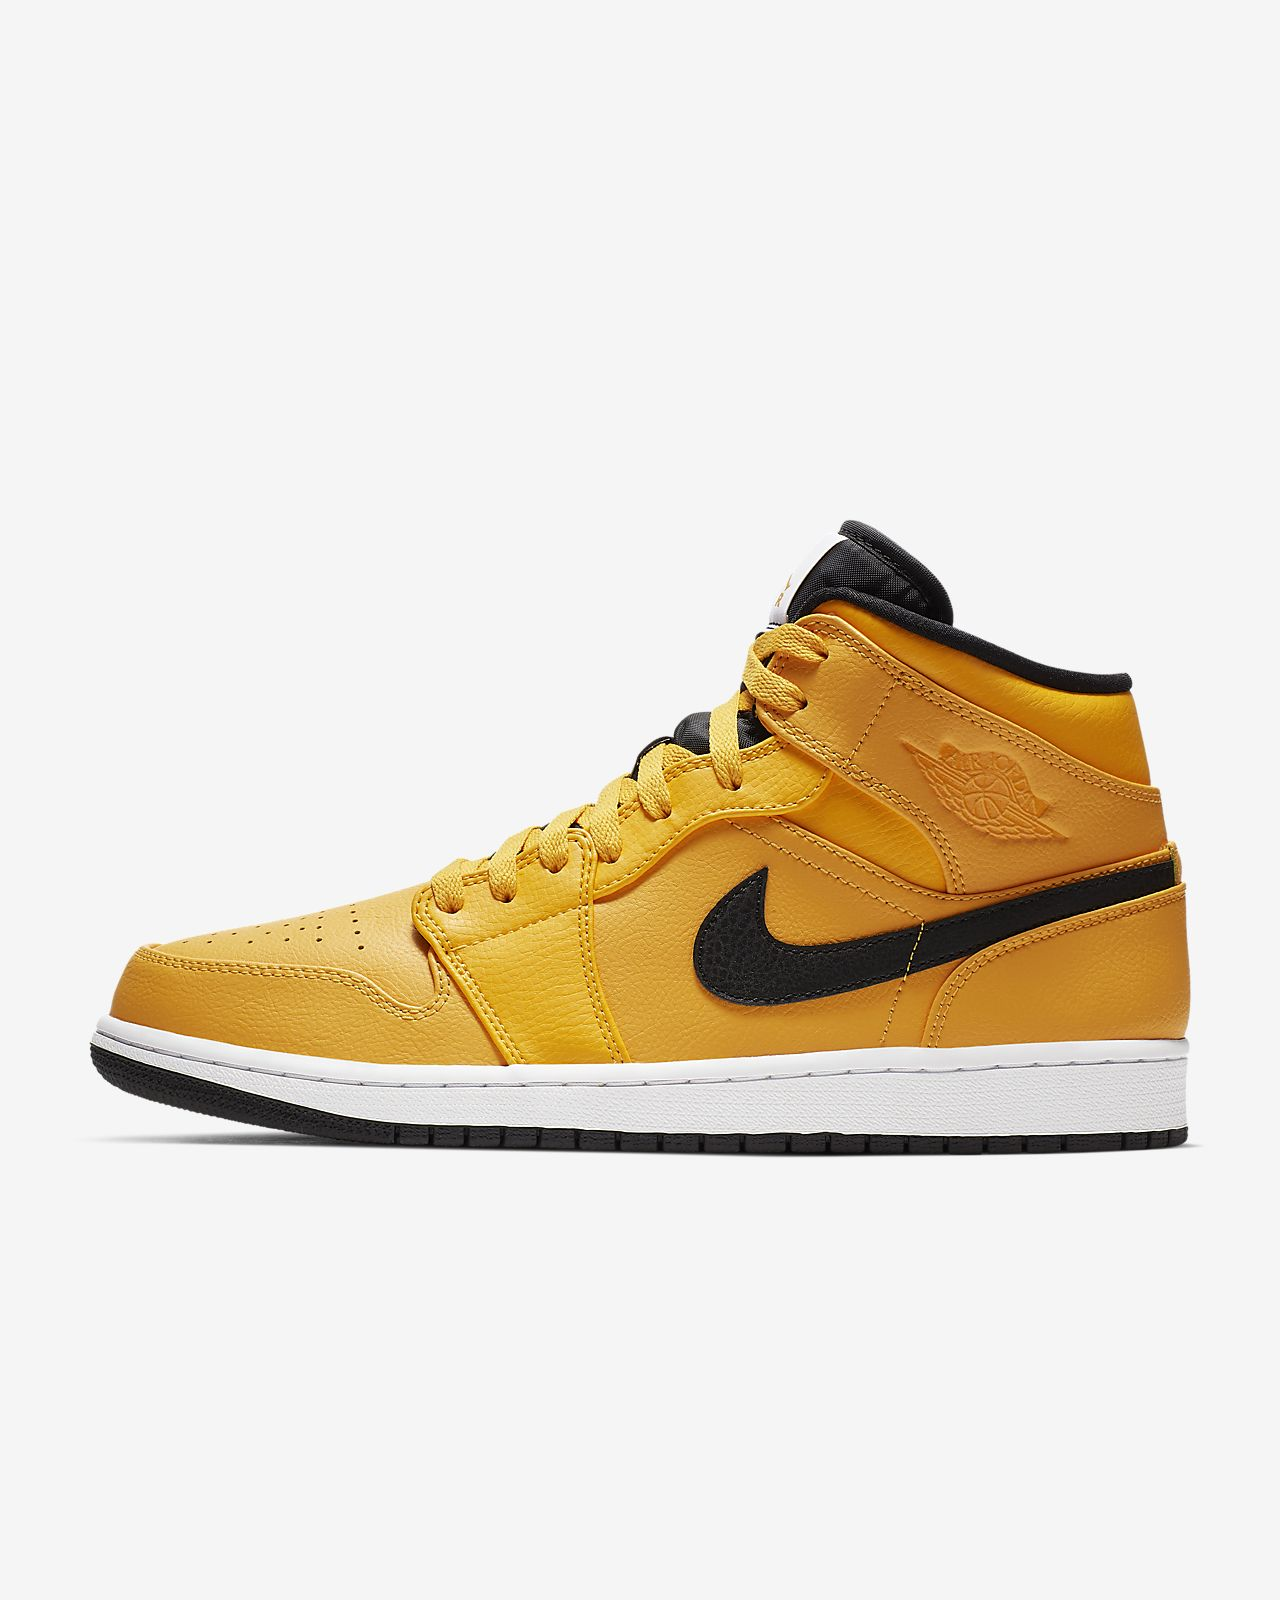 495adde55492 Air Jordan 1 Mid Men s Shoe. Nike.com